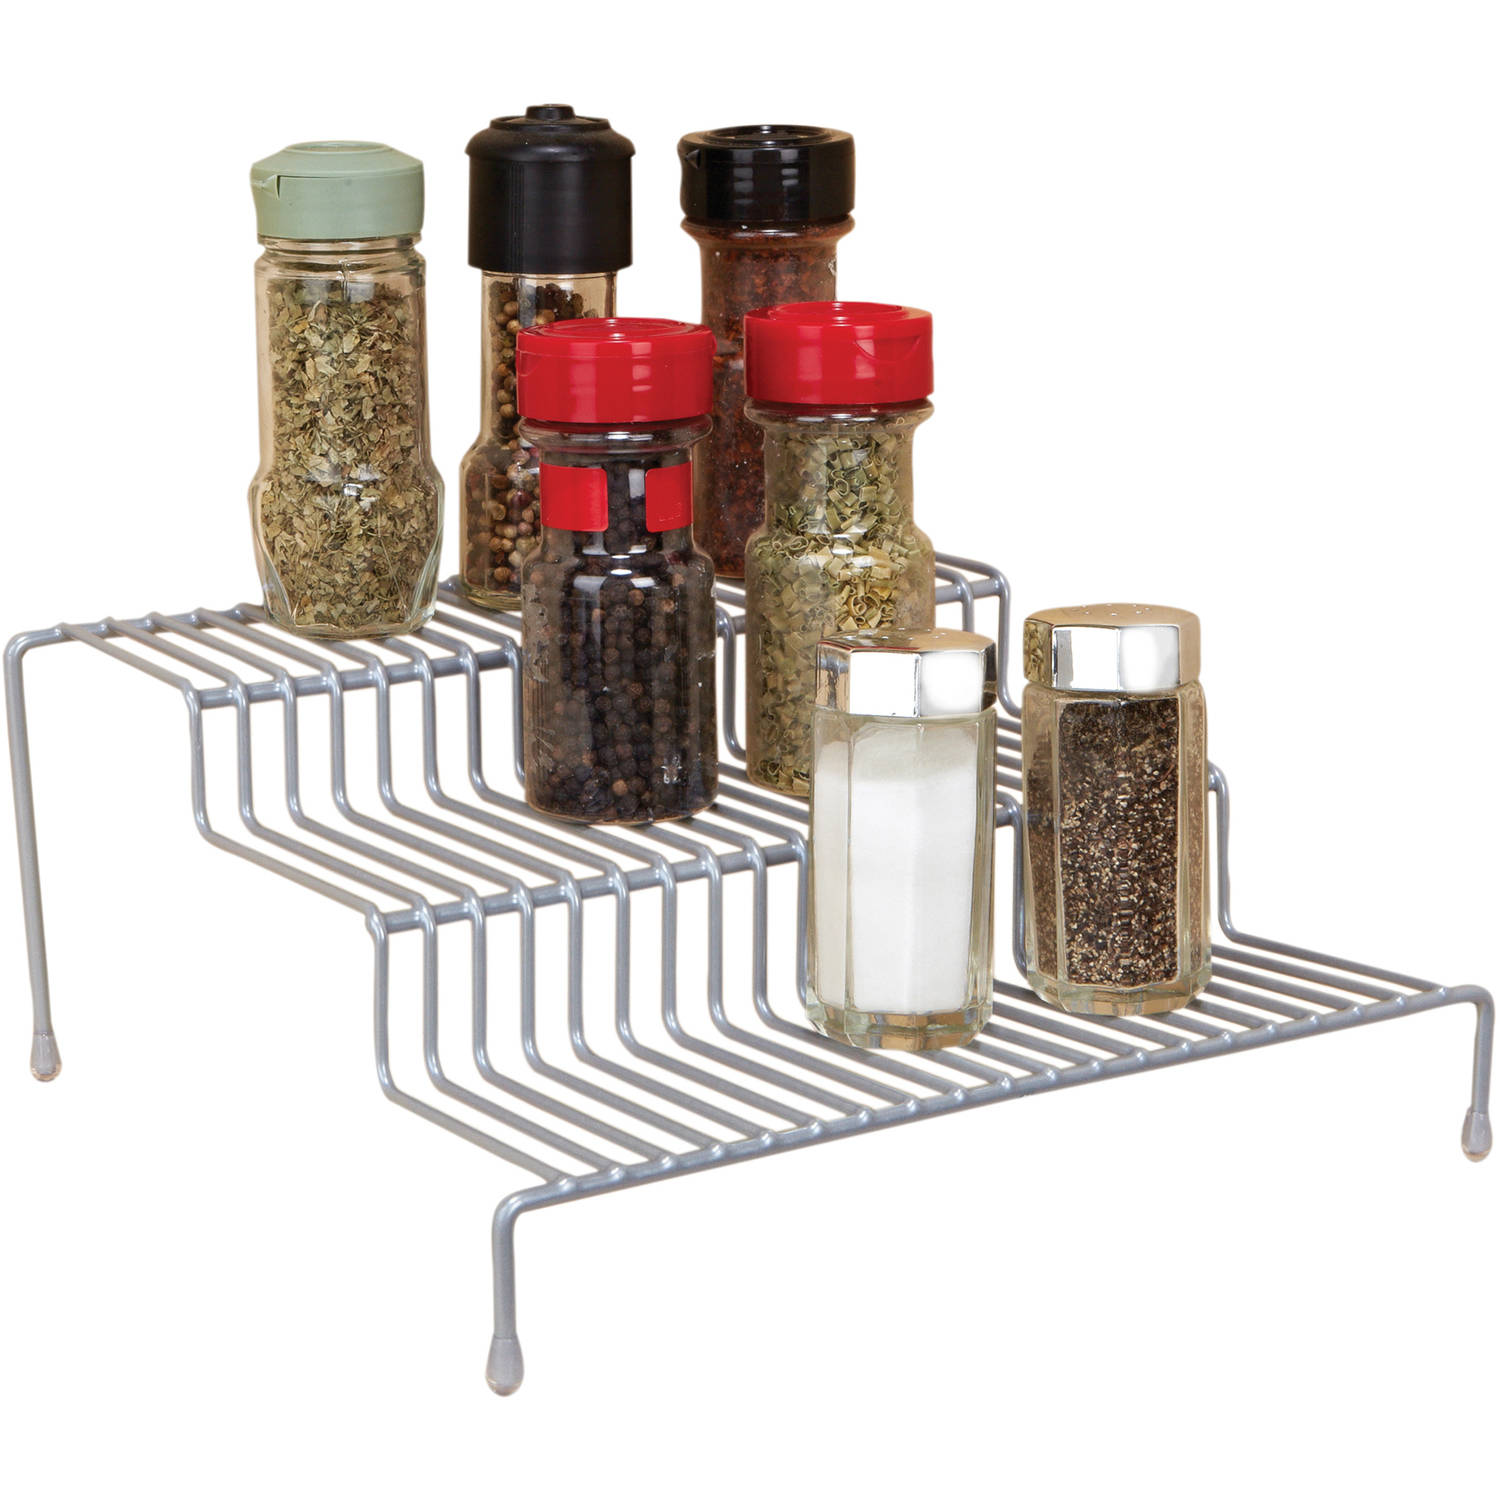 Kitchen Details 3-Tier Spice Organizer